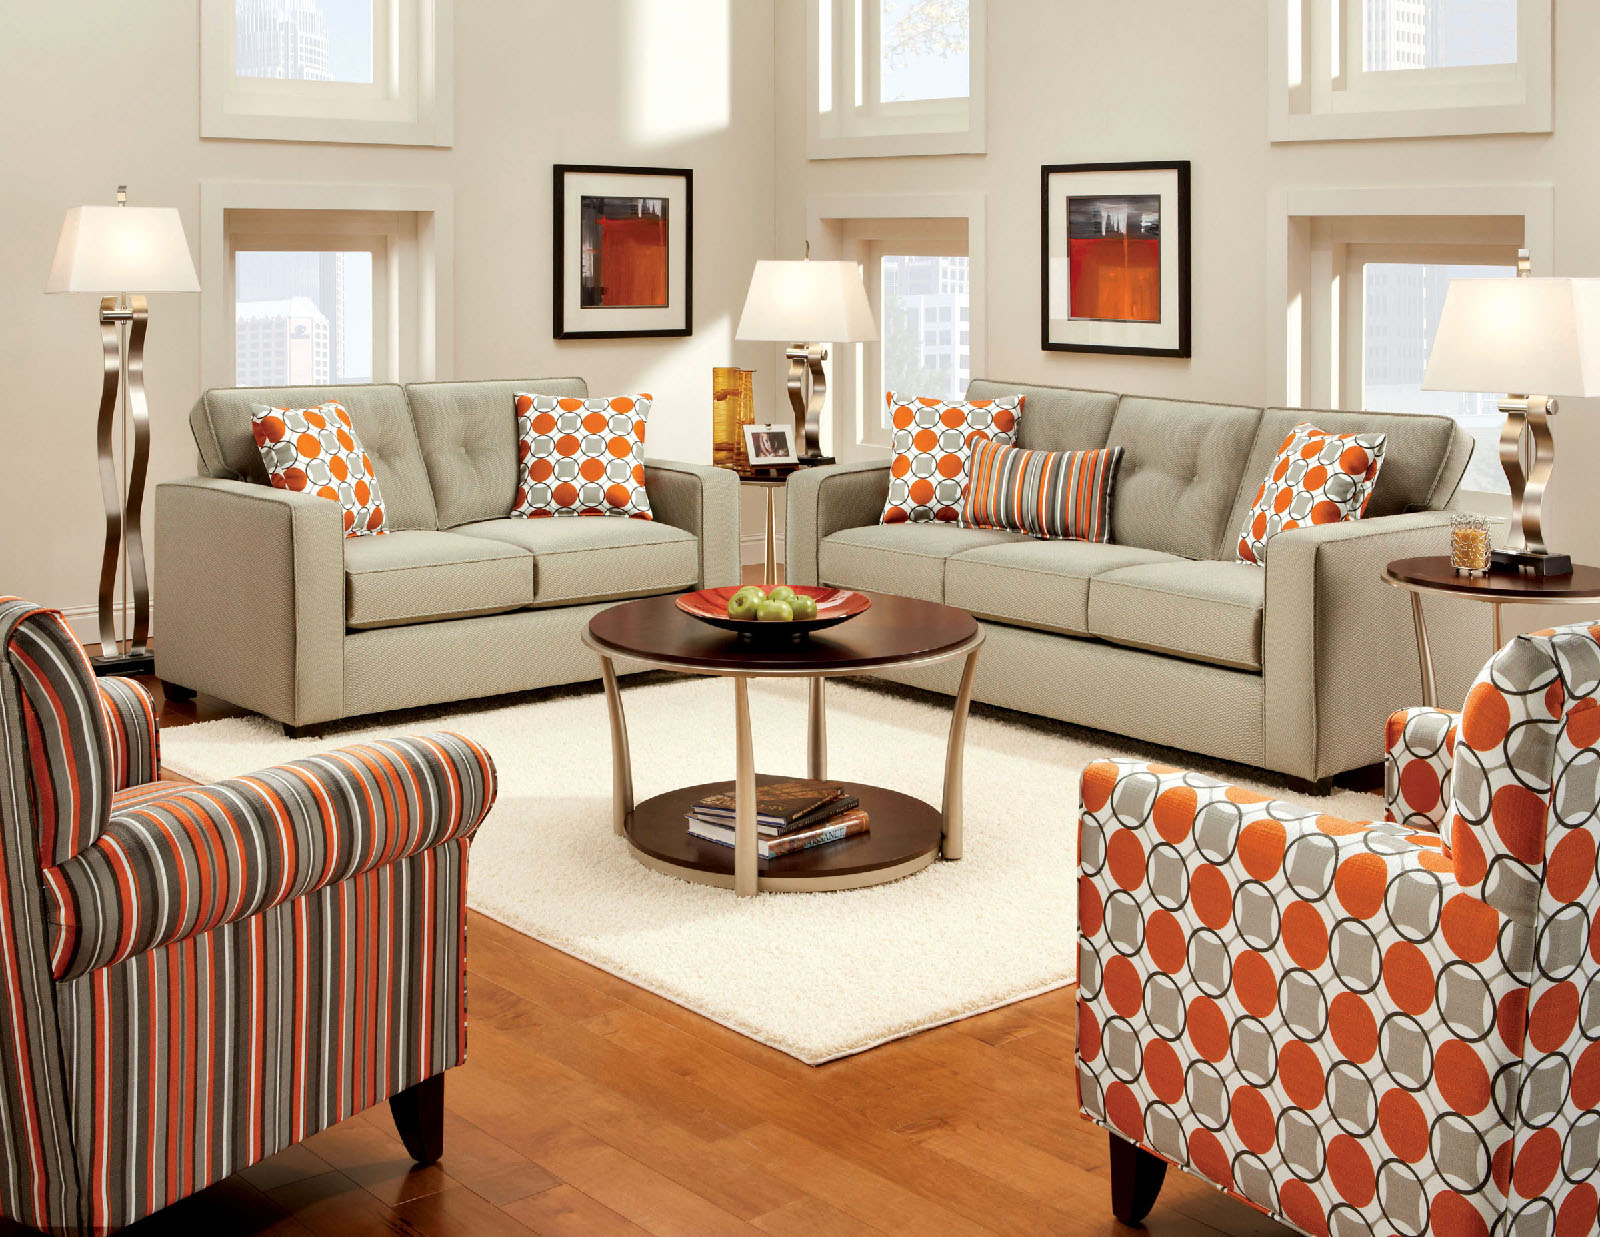 Made in the USA Sofa Sets